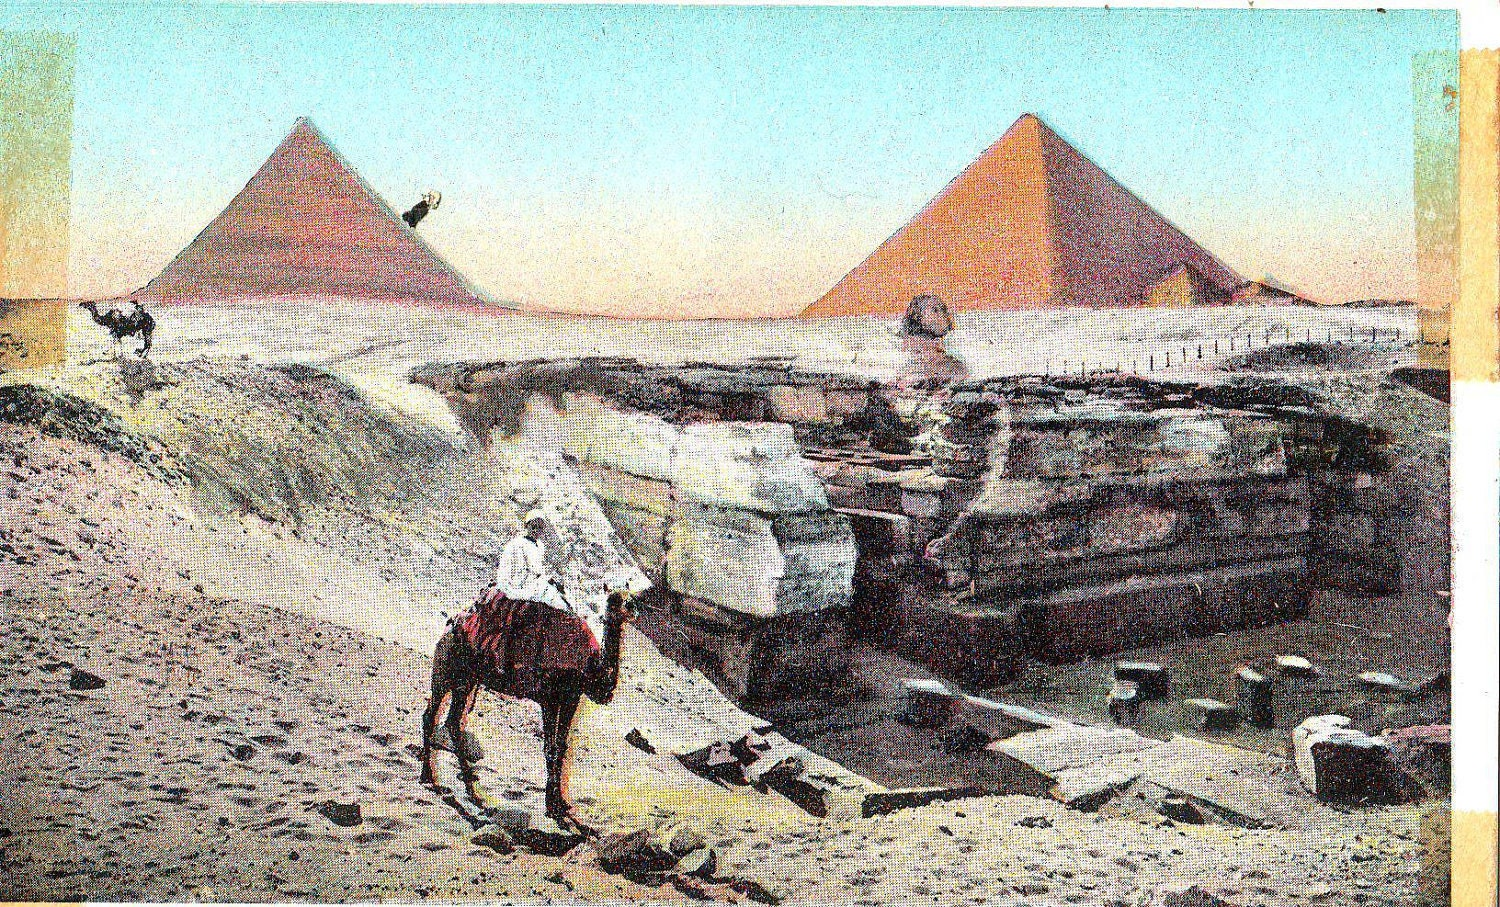 Antique Postcard - Cairo - Temple of Mena Sphinx and Pyramids - thevintagemode